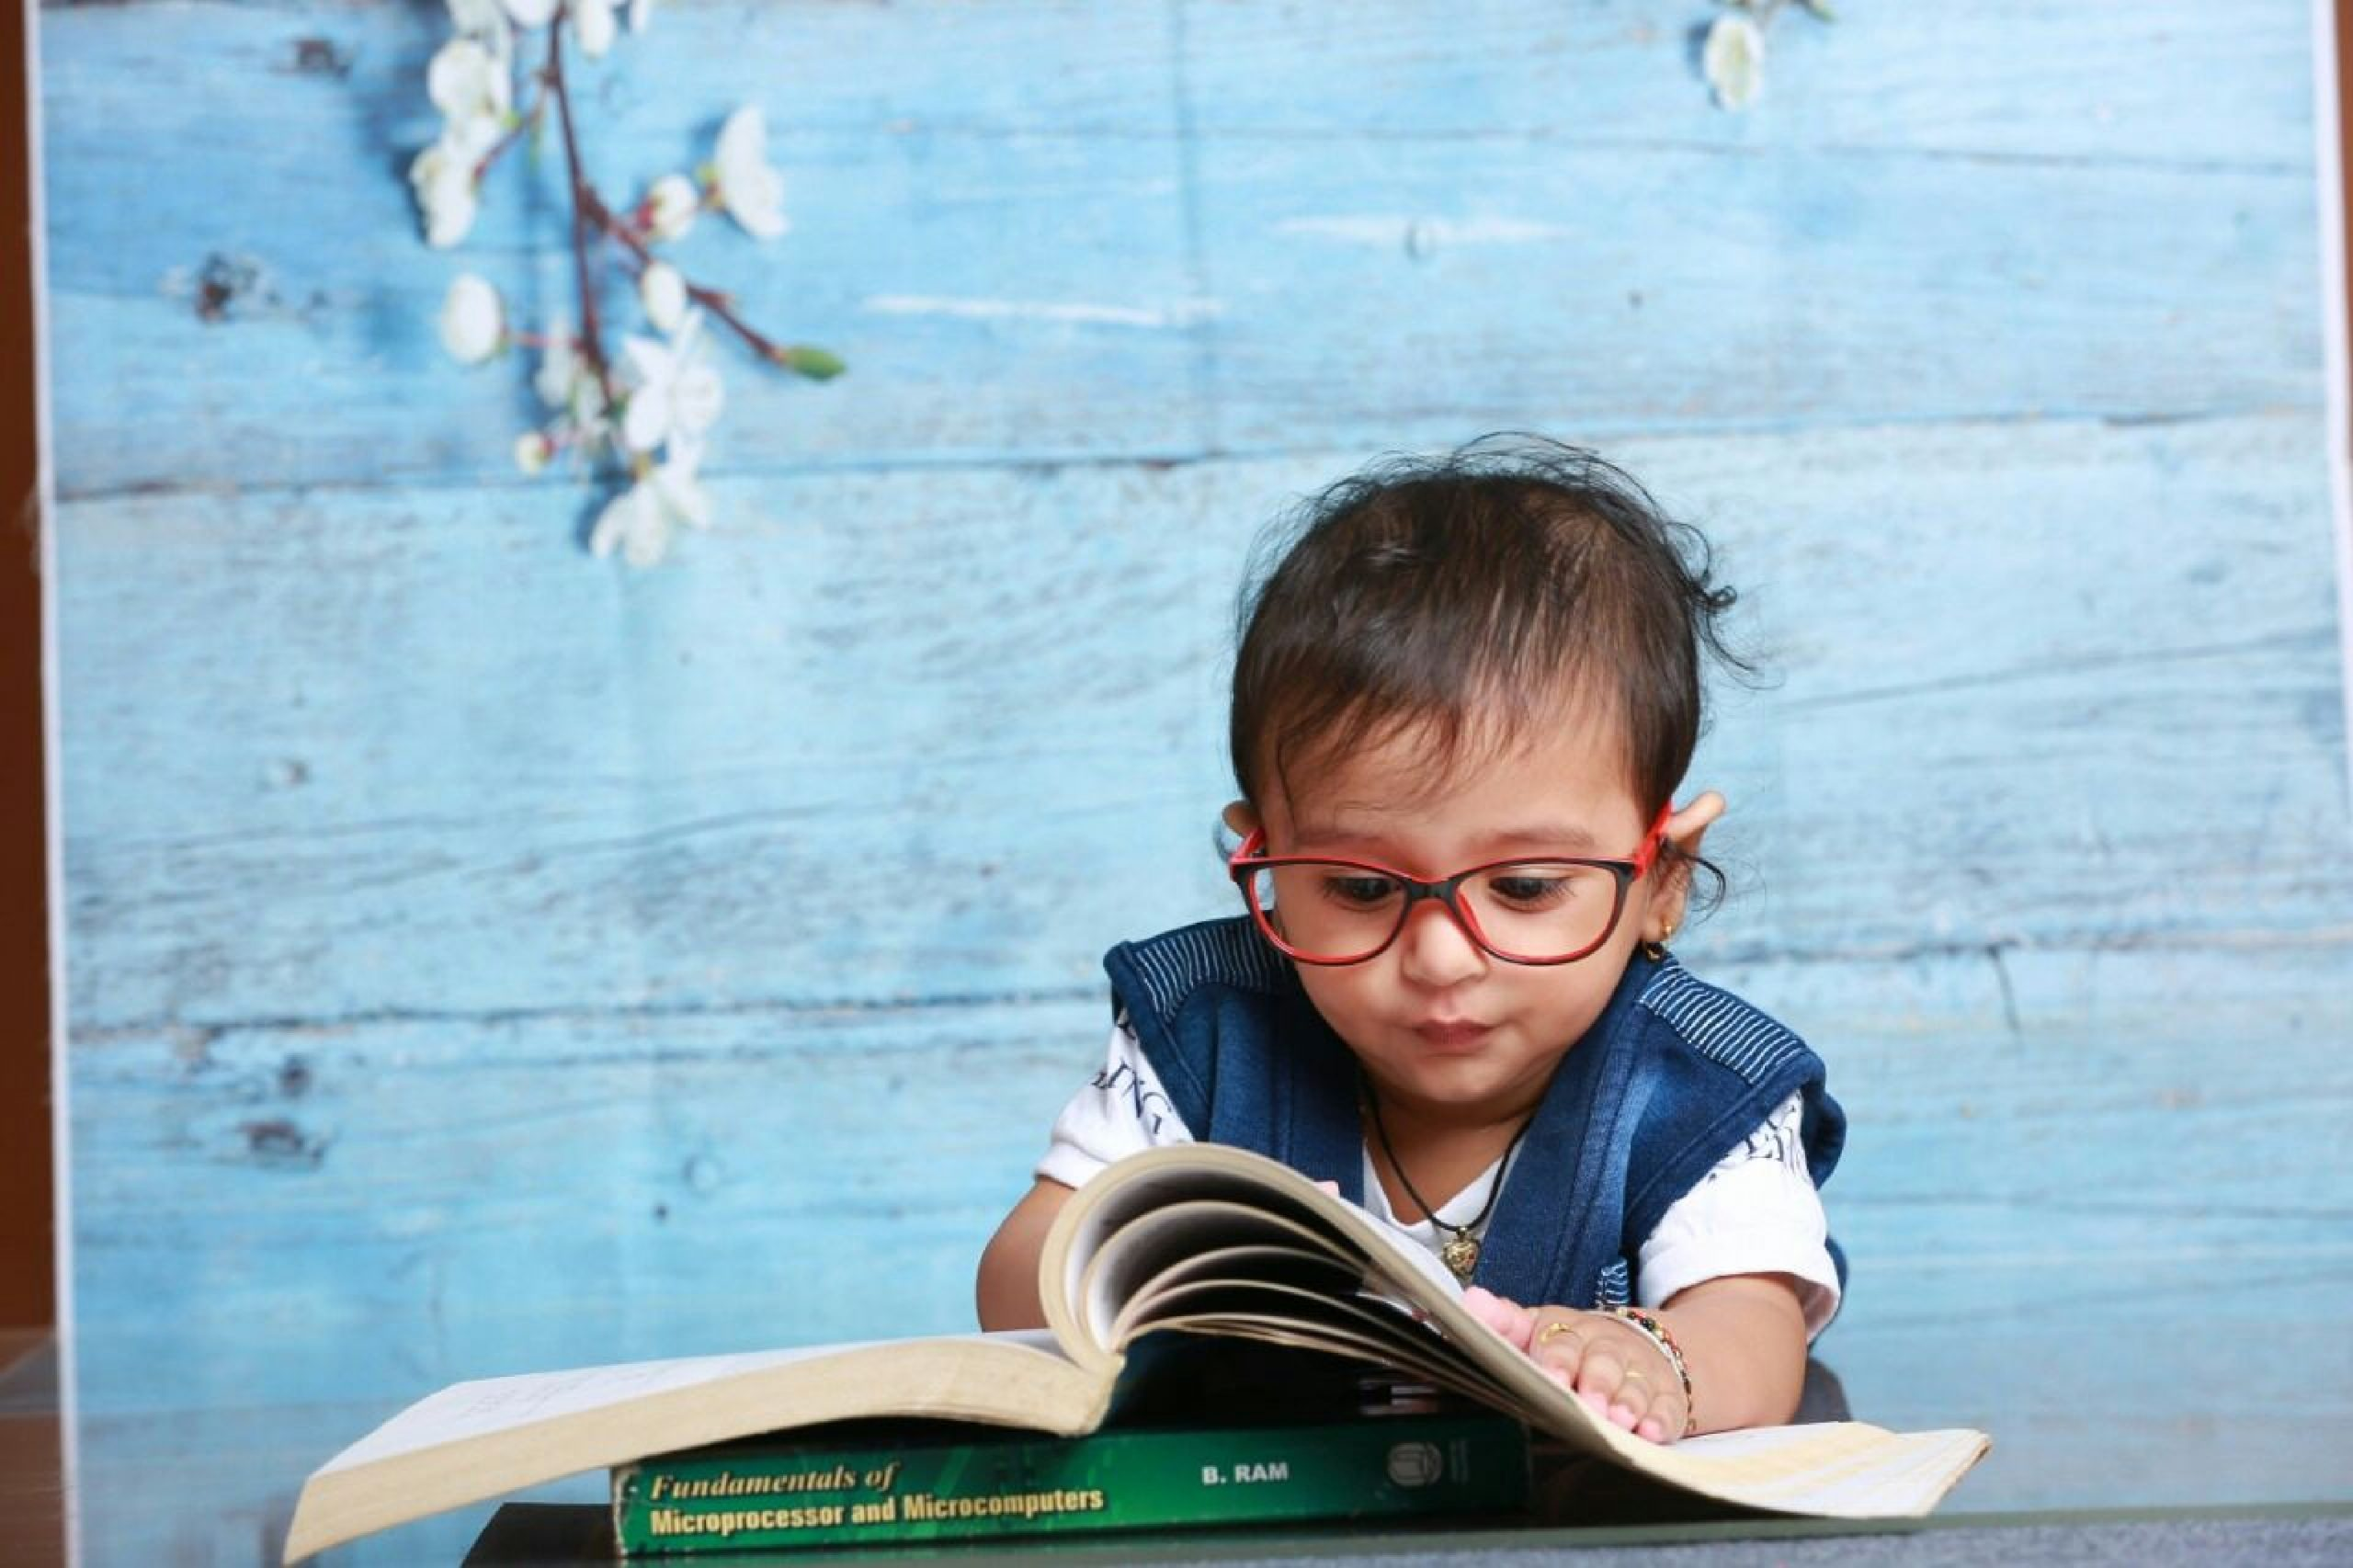 kid with spectacles reading book